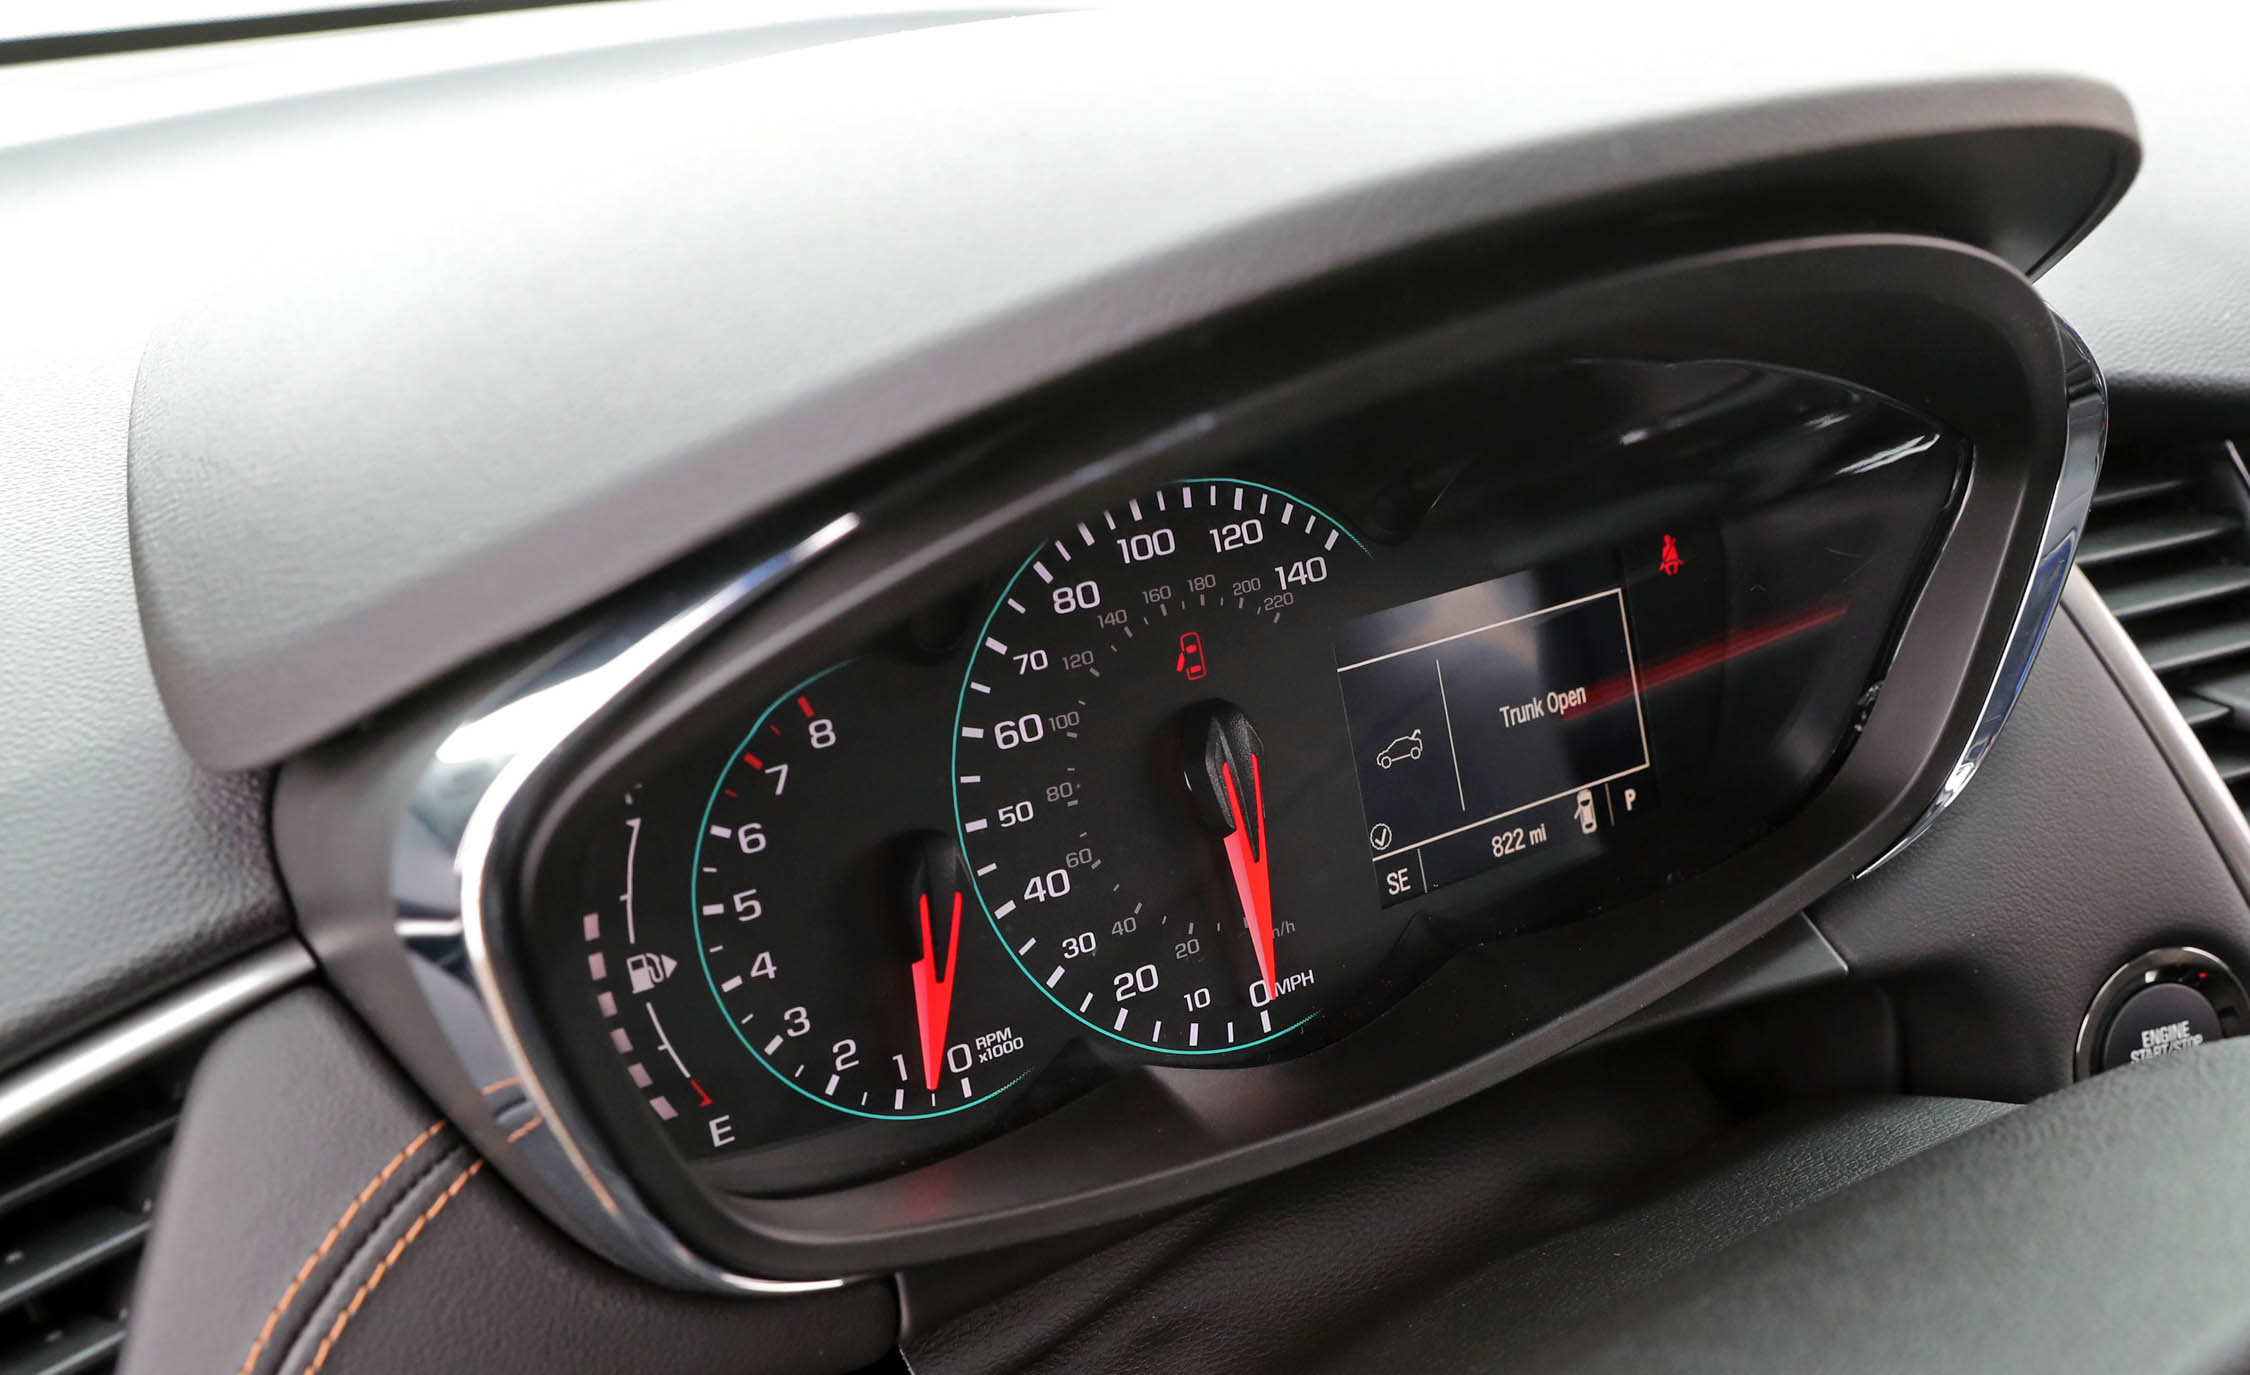 2017 Chevrolet Trax Interior View Speedometer (Photo 17 of 47)